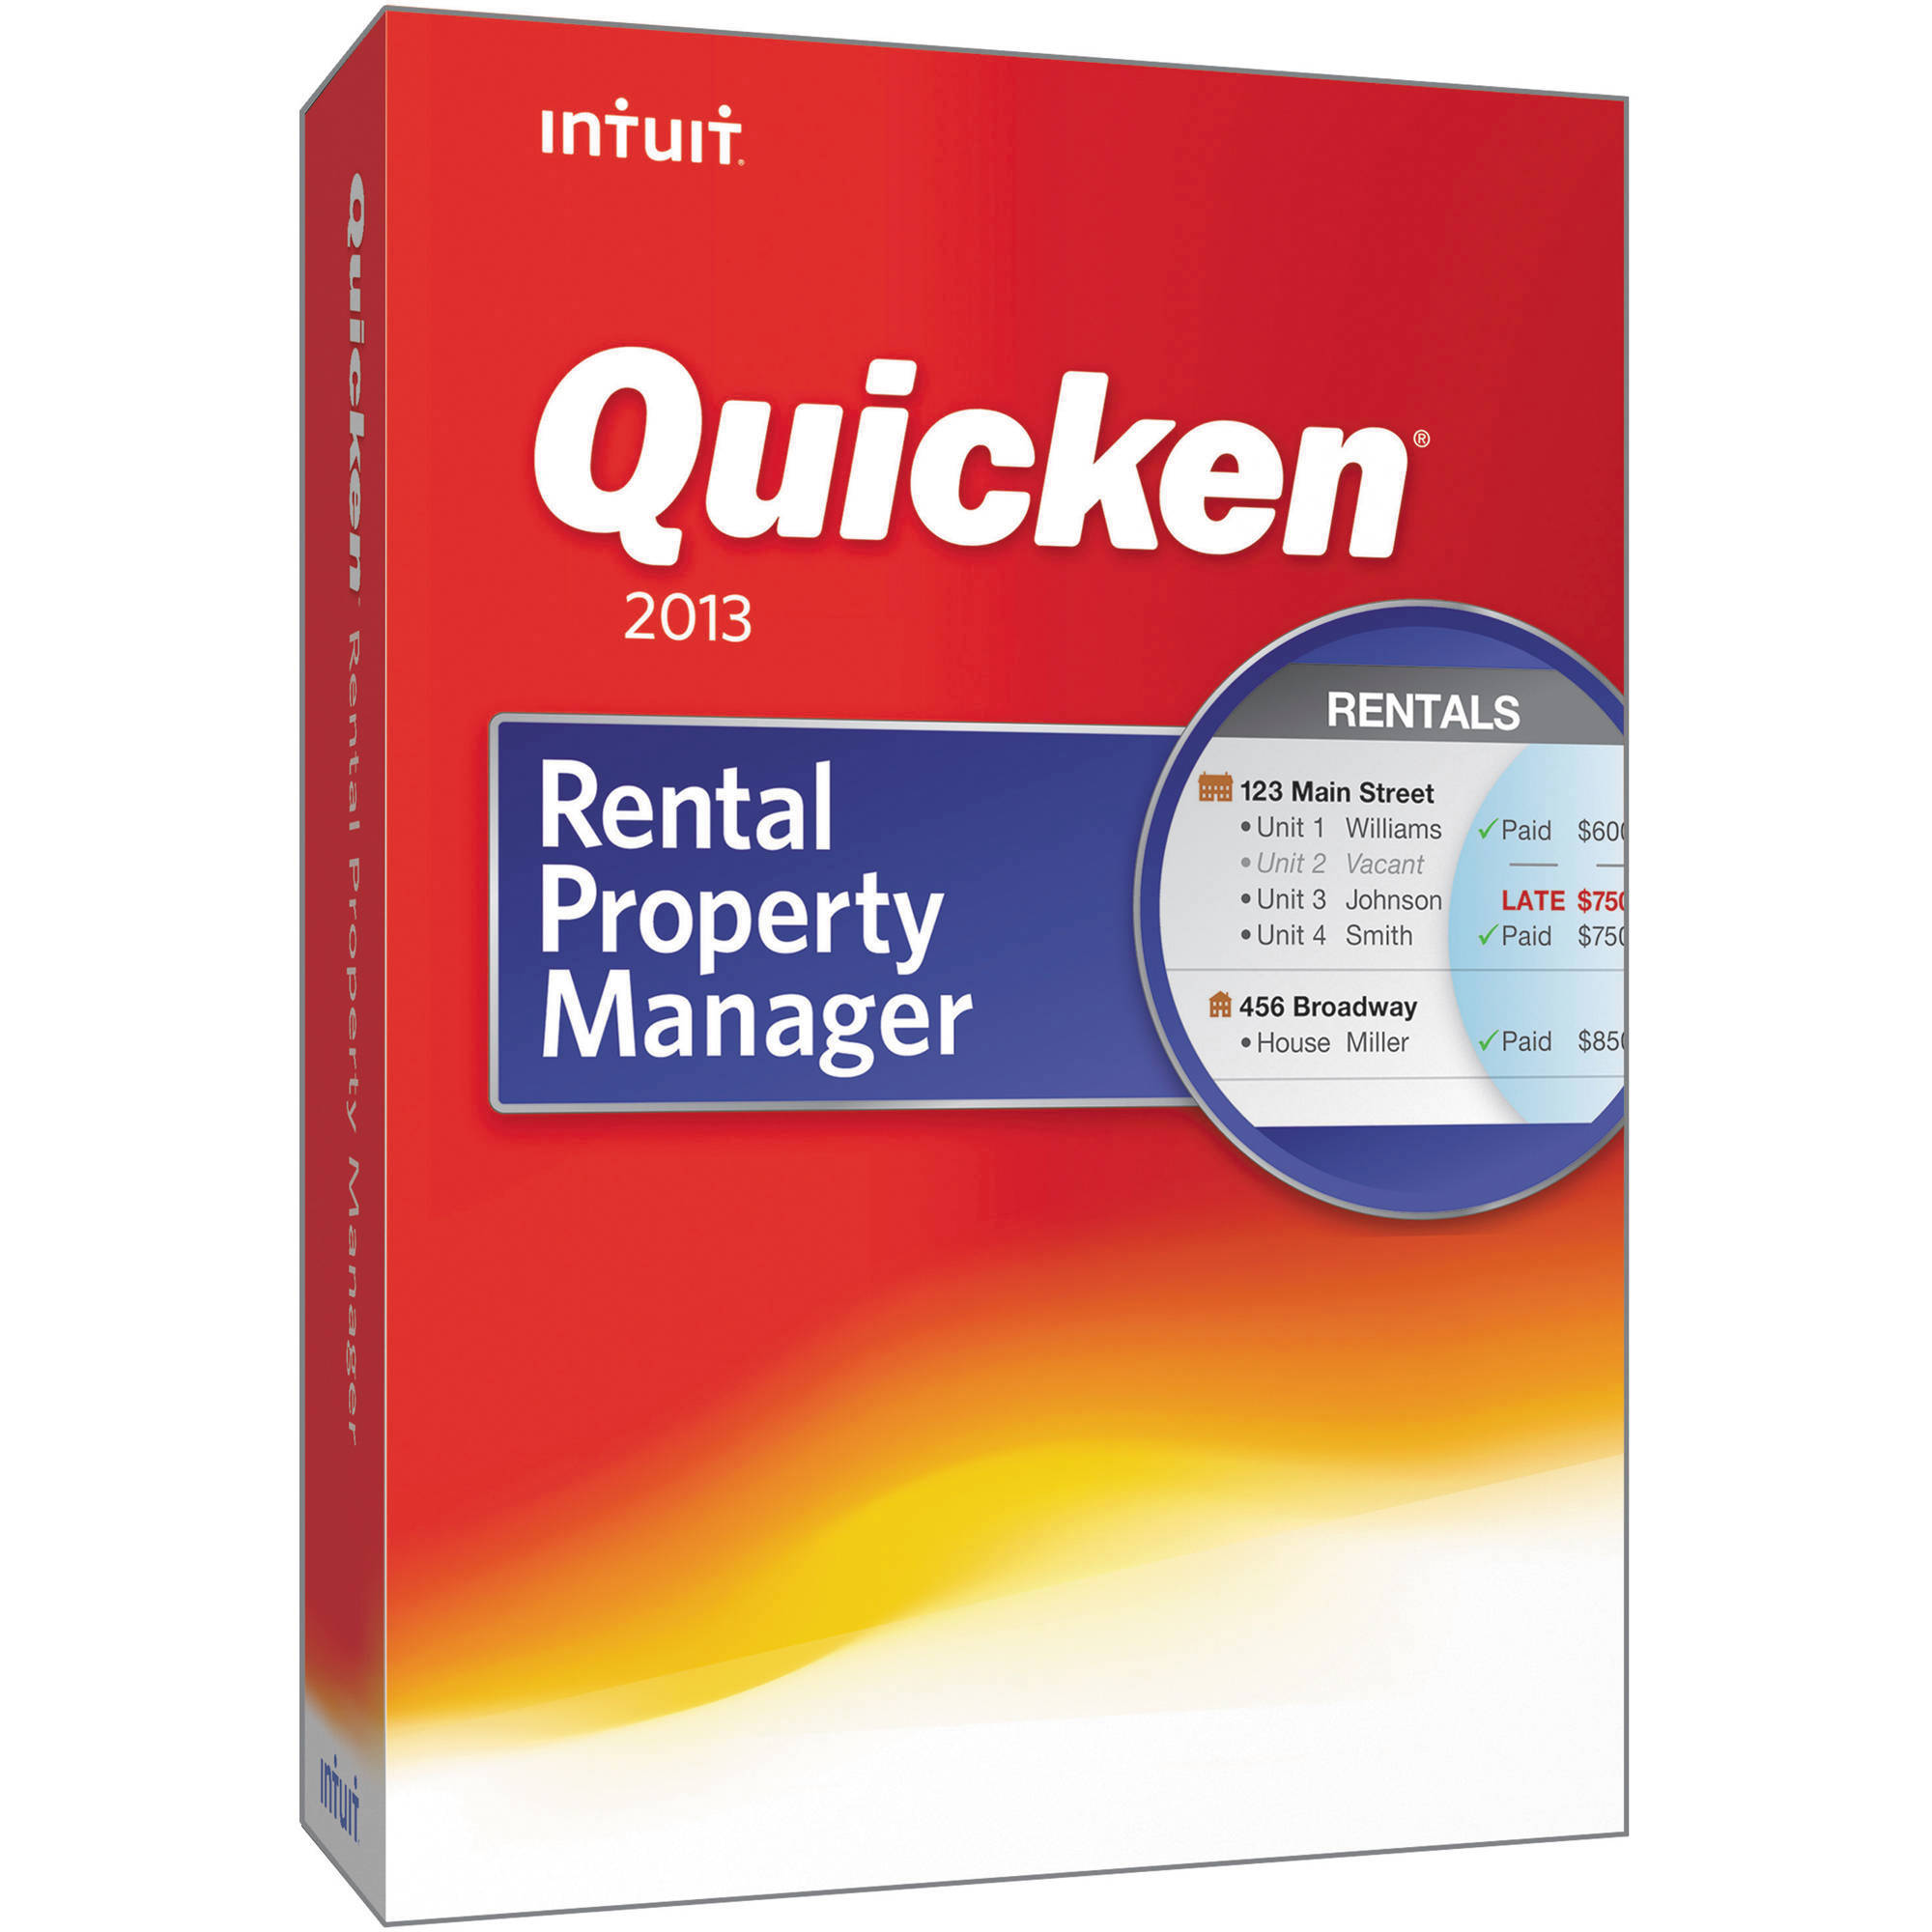 Amazon. Com: quicken rental property manager 2014 [old version.